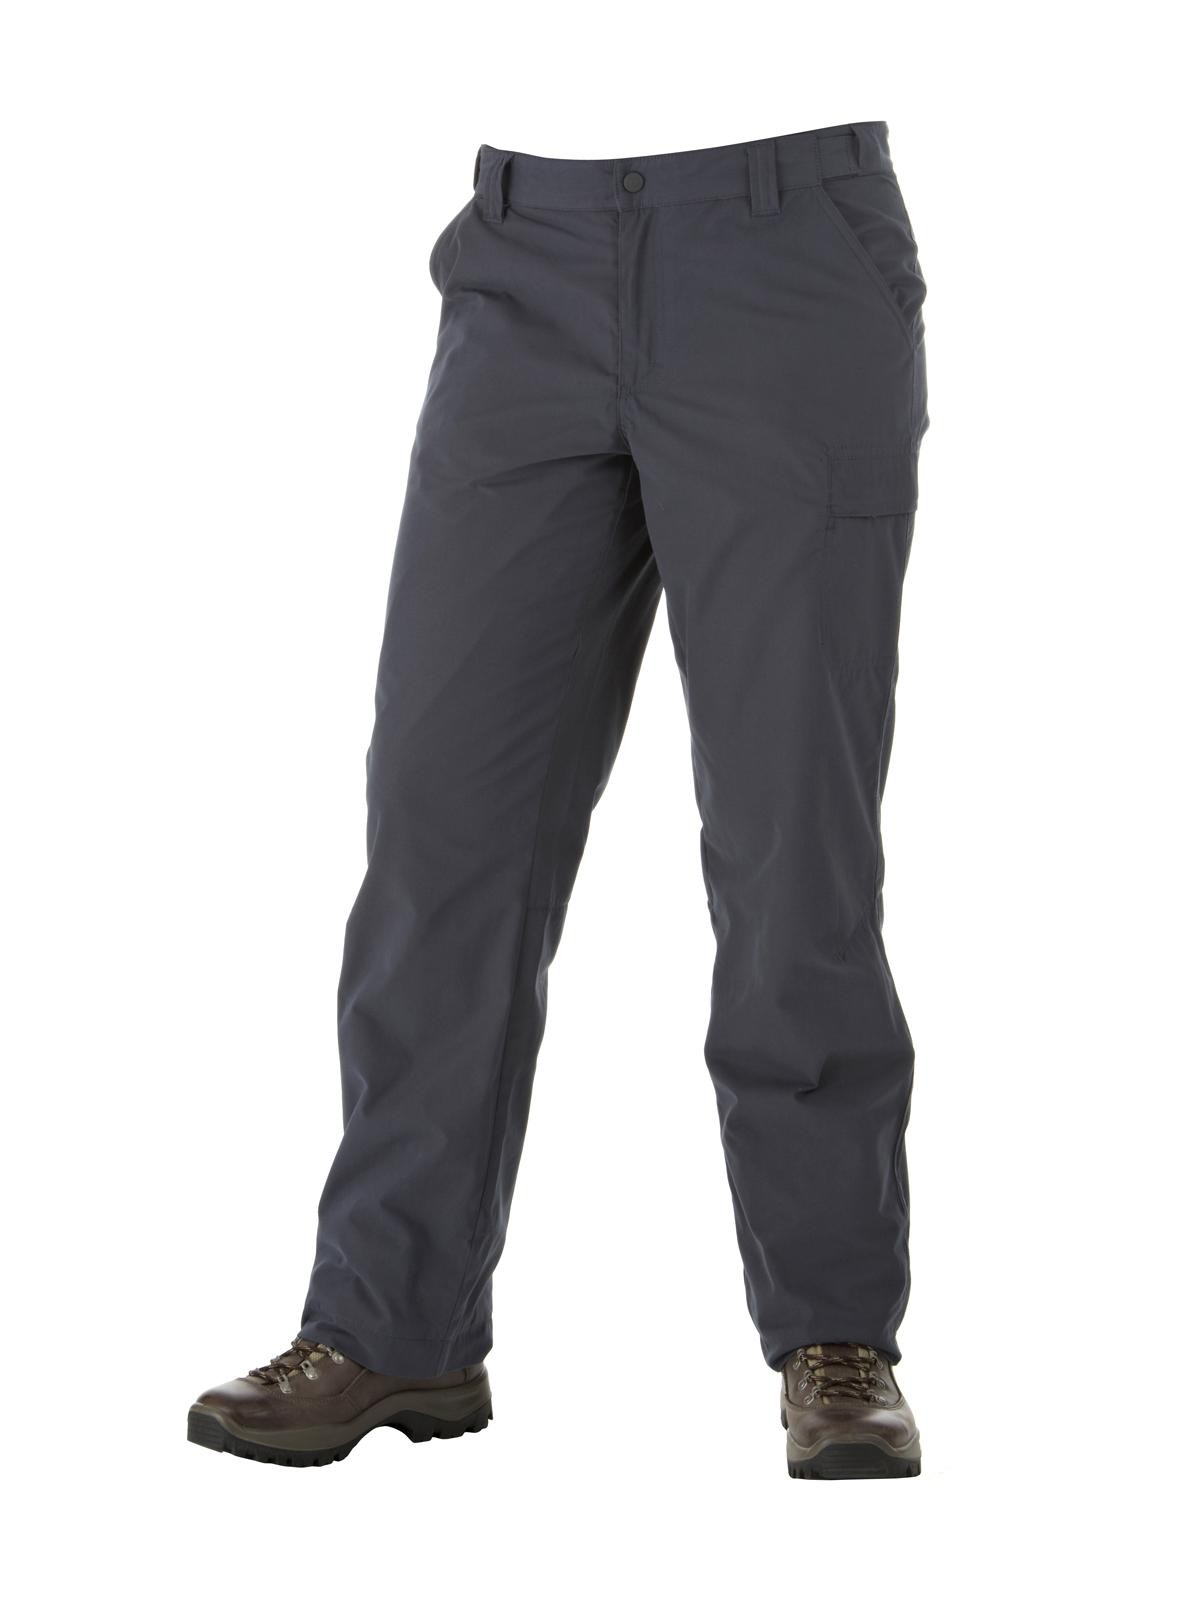 2019 discount sale free delivery fashionable and attractive package Berghaus Navigator Thermal Pants